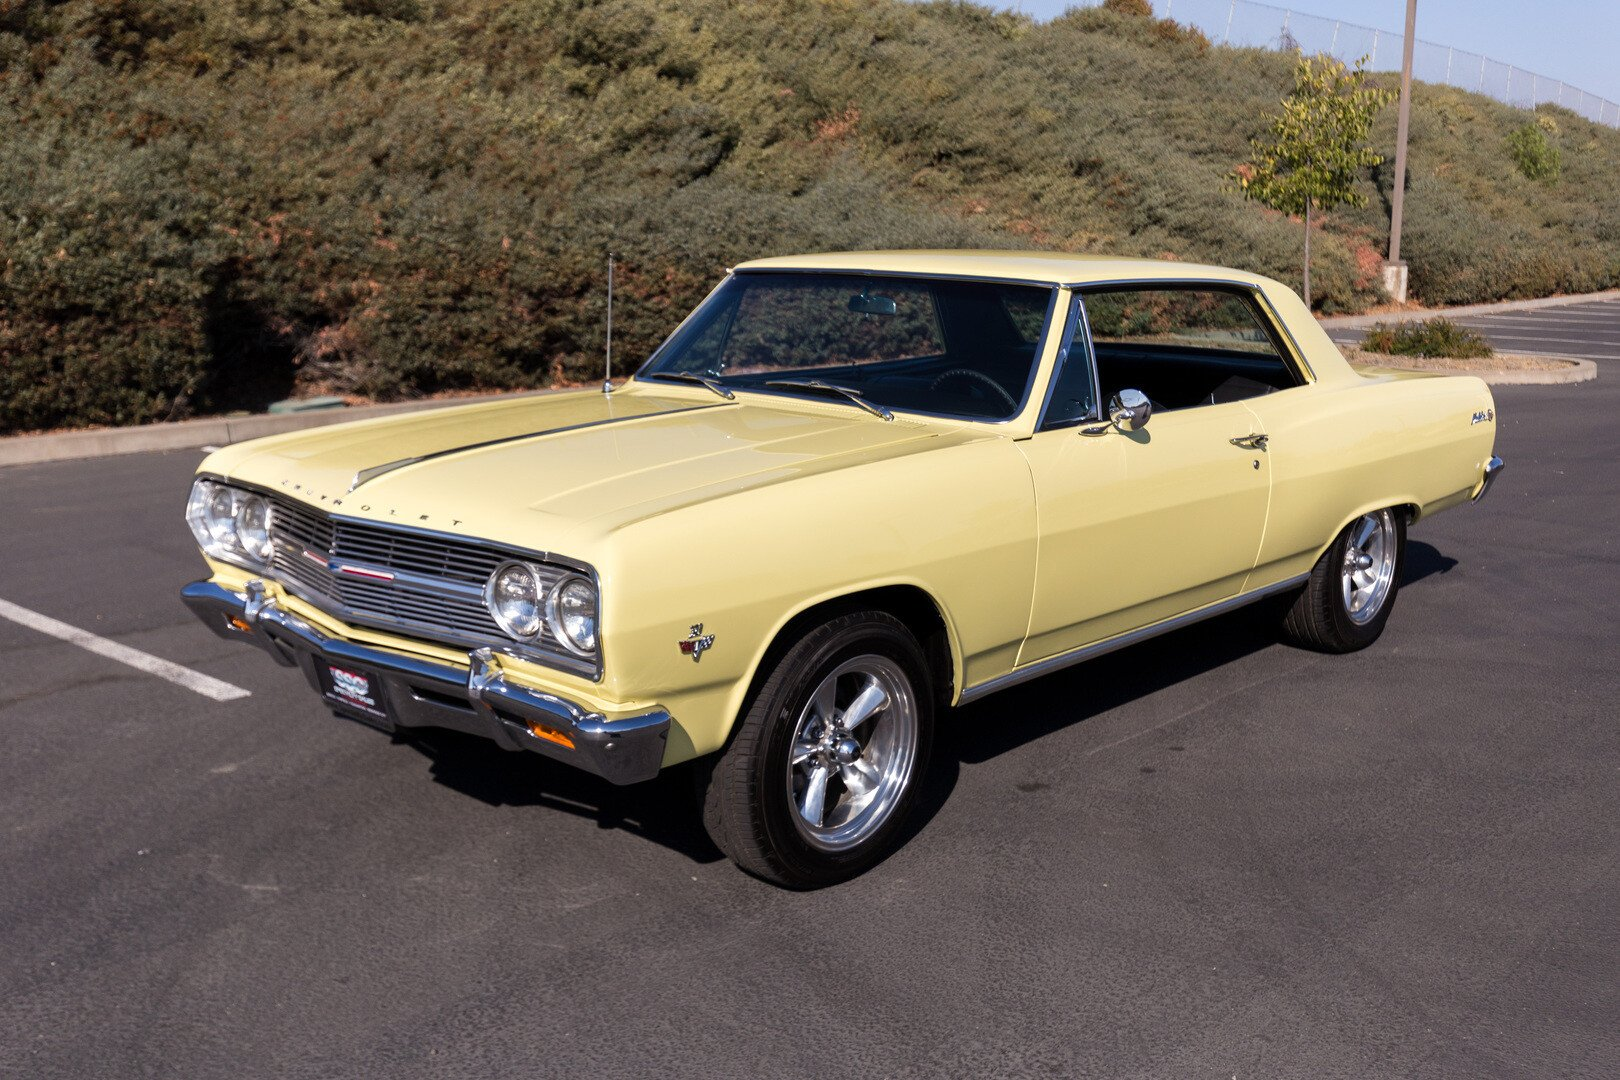 Old Muscle Car For Sale. Affordable Old School Muscle Cars With ...